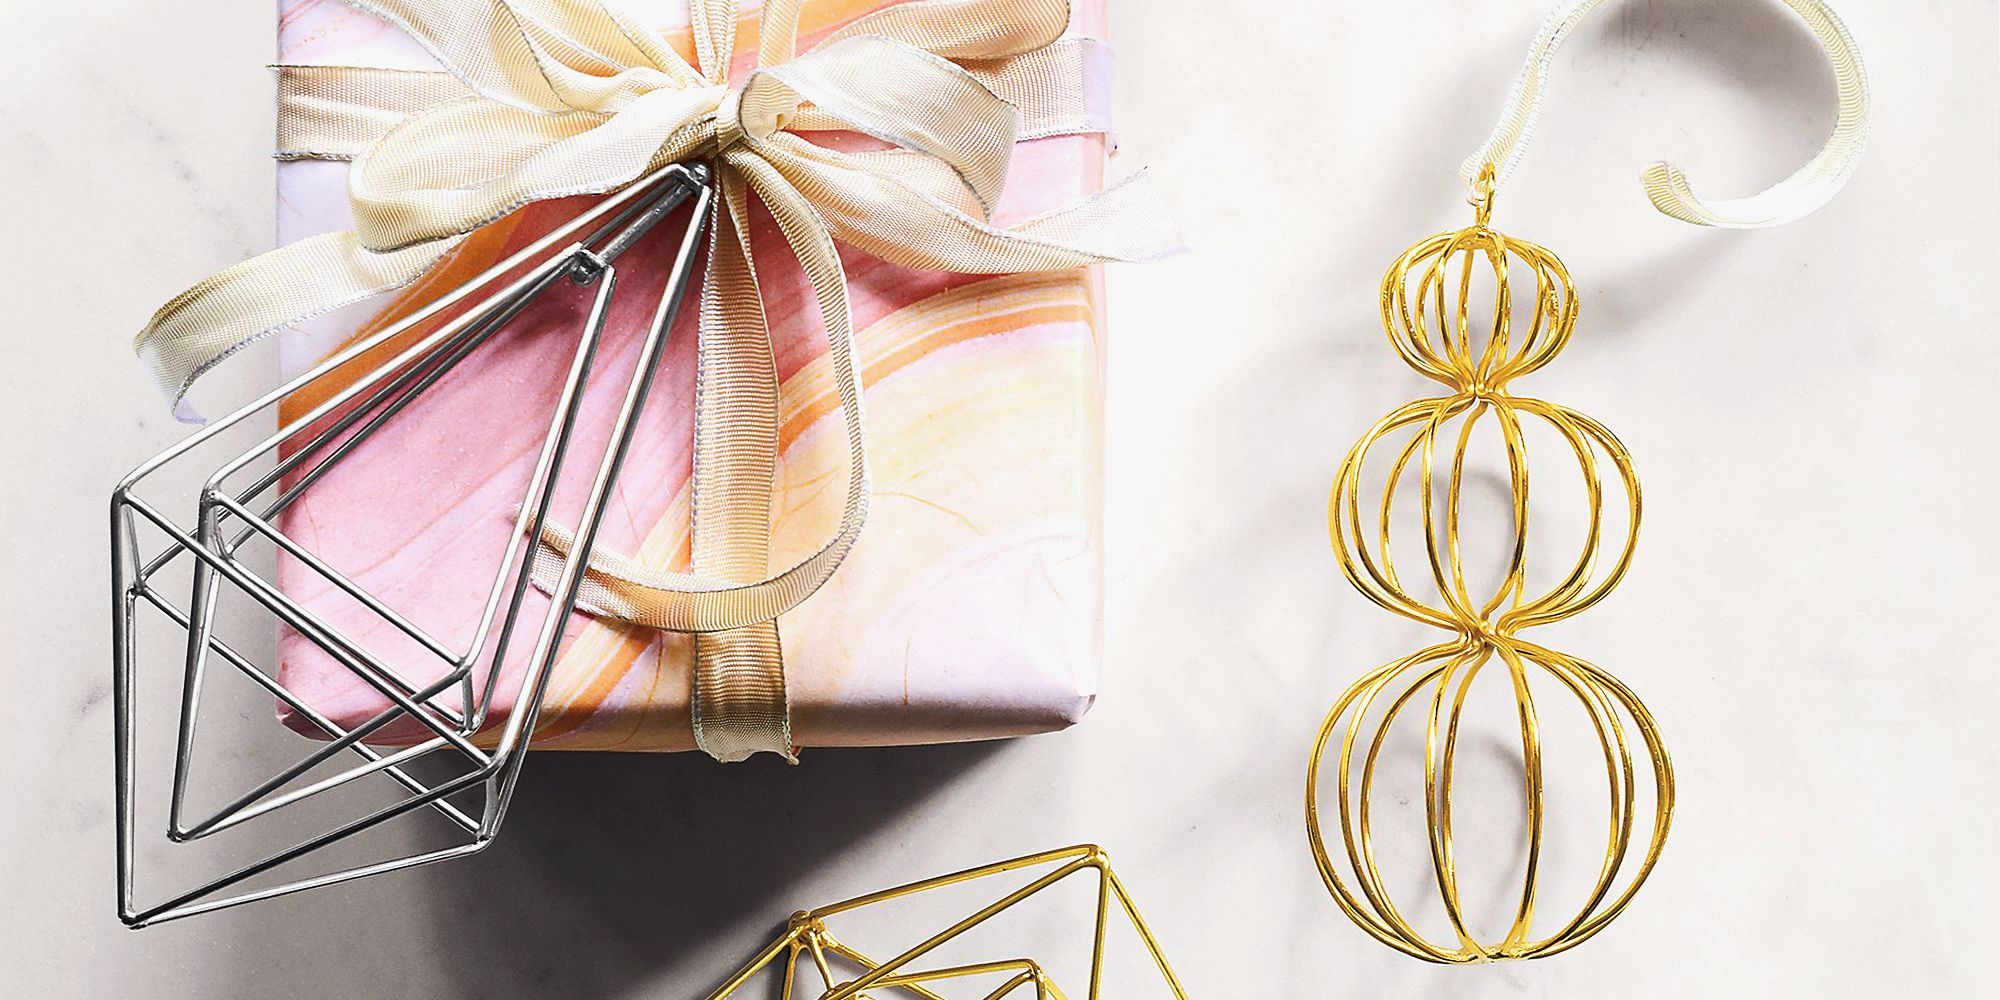 13 Best Christmas Ornaments for Your Tree in 2018 - Glass and ...